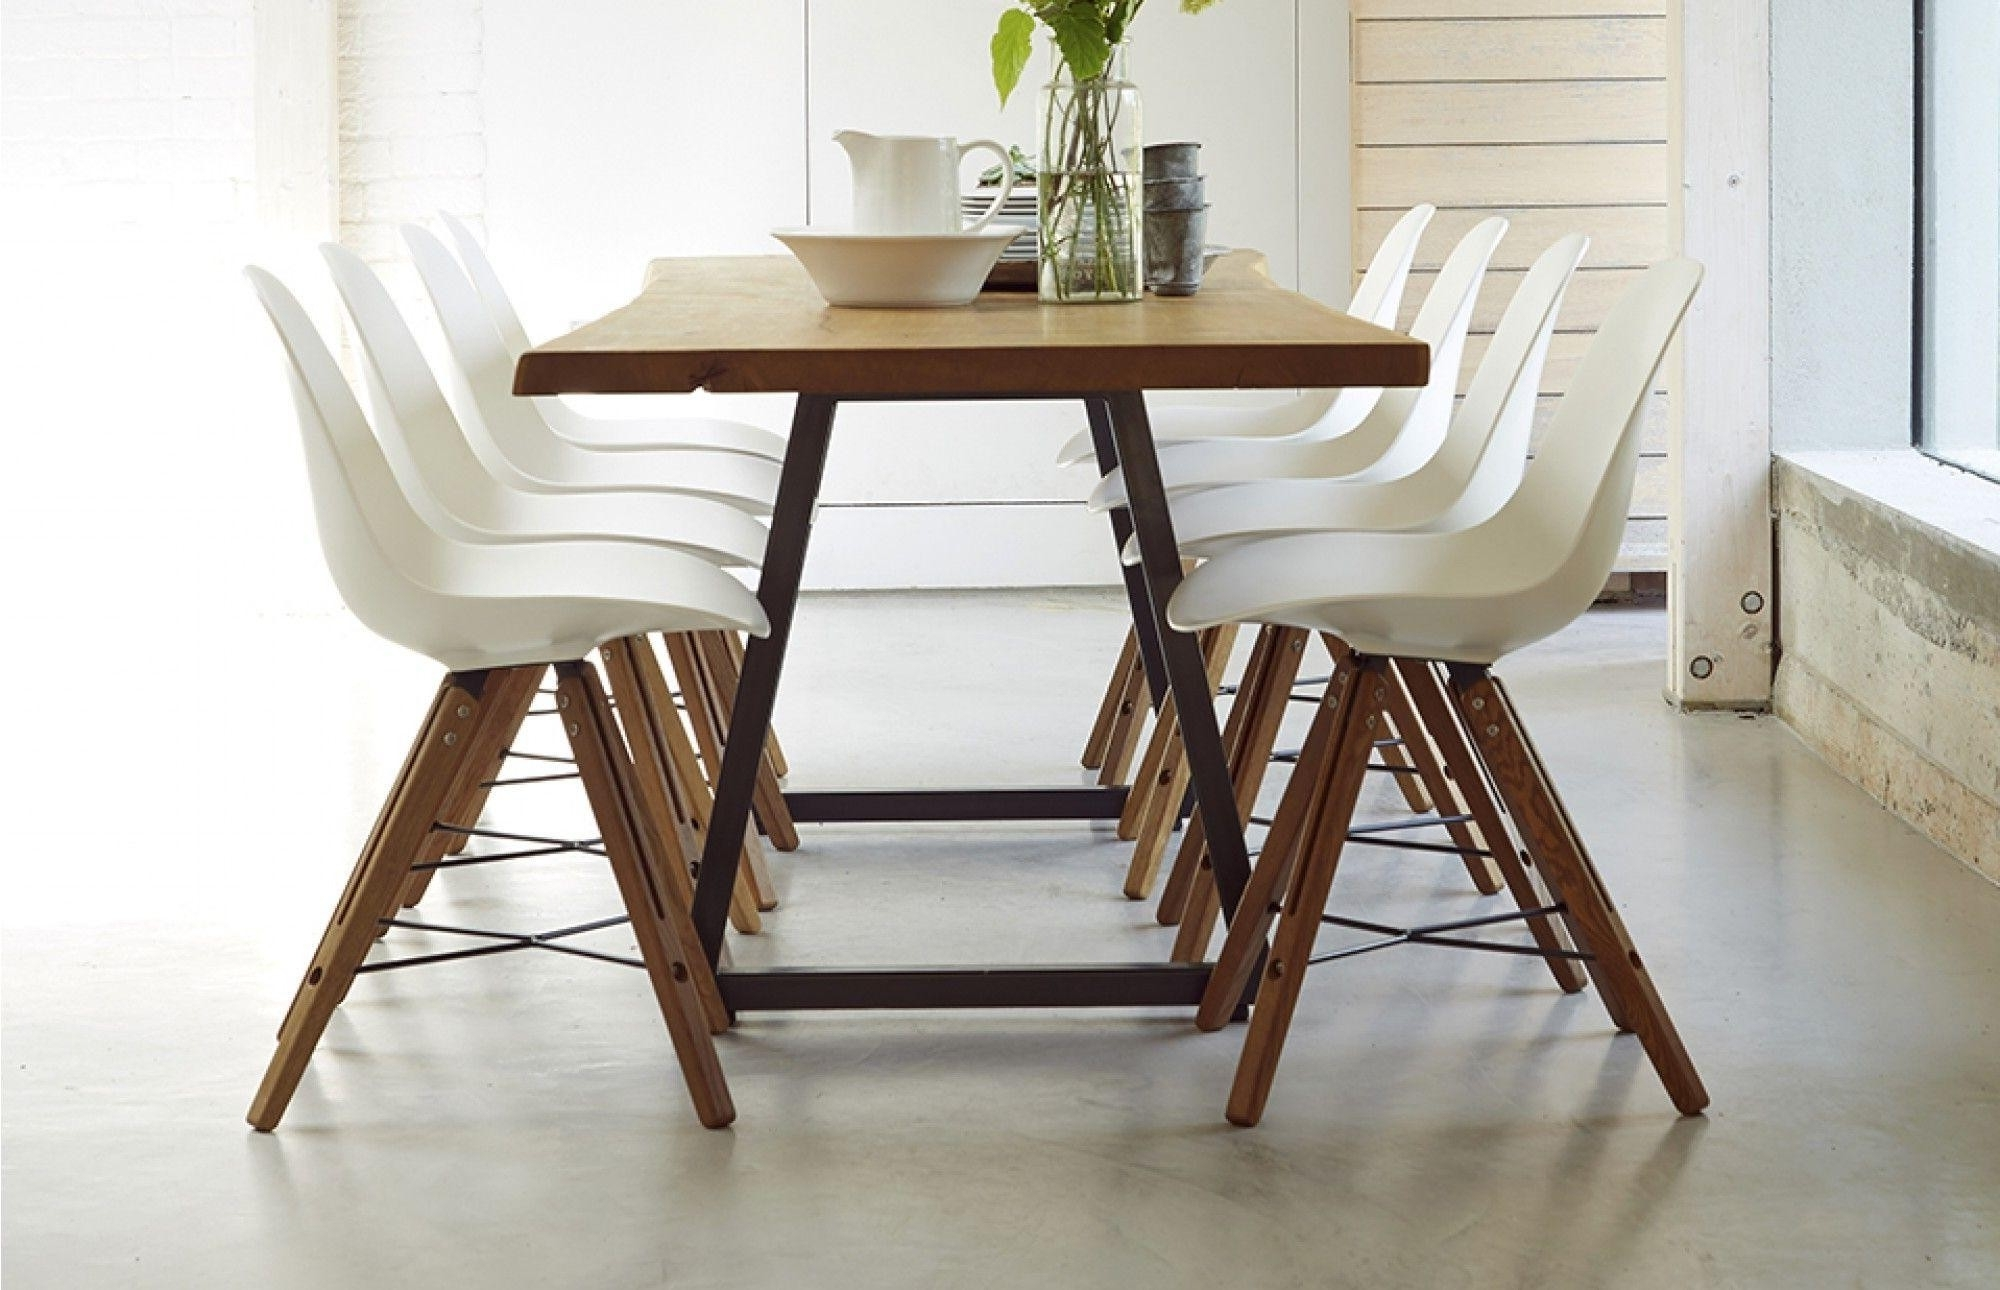 Well Liked 6 Seater Dining Table Size Inspirational Best 8 Seater Dining Room Regarding 8 Seater Dining Tables (View 8 of 25)